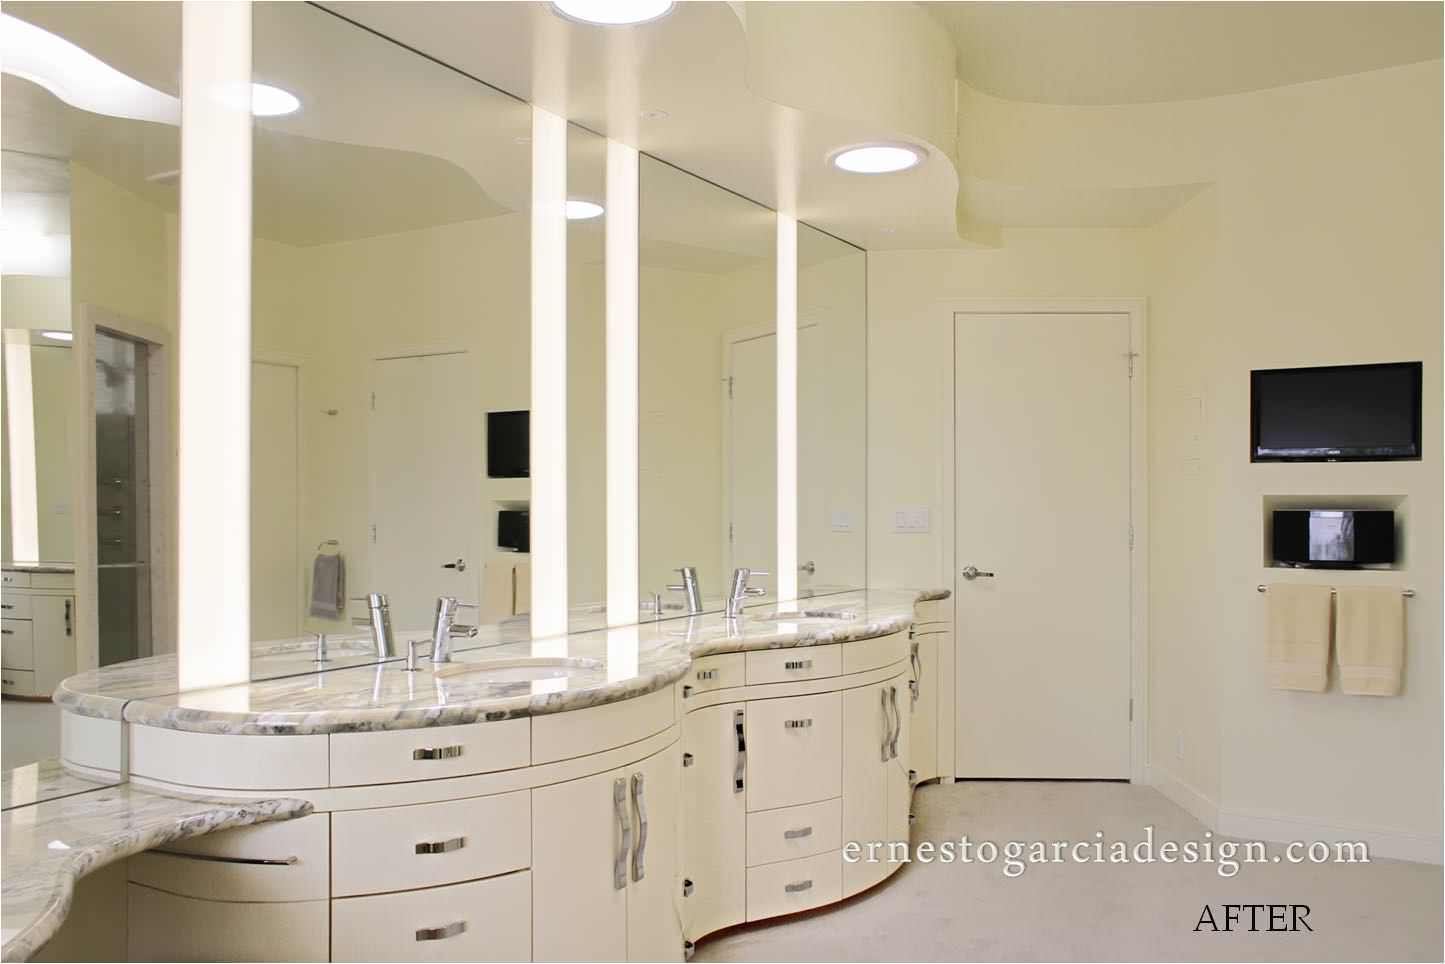 * 2012 SECOND PLACE WINNER - BATHROOM CATEGORY * ASID